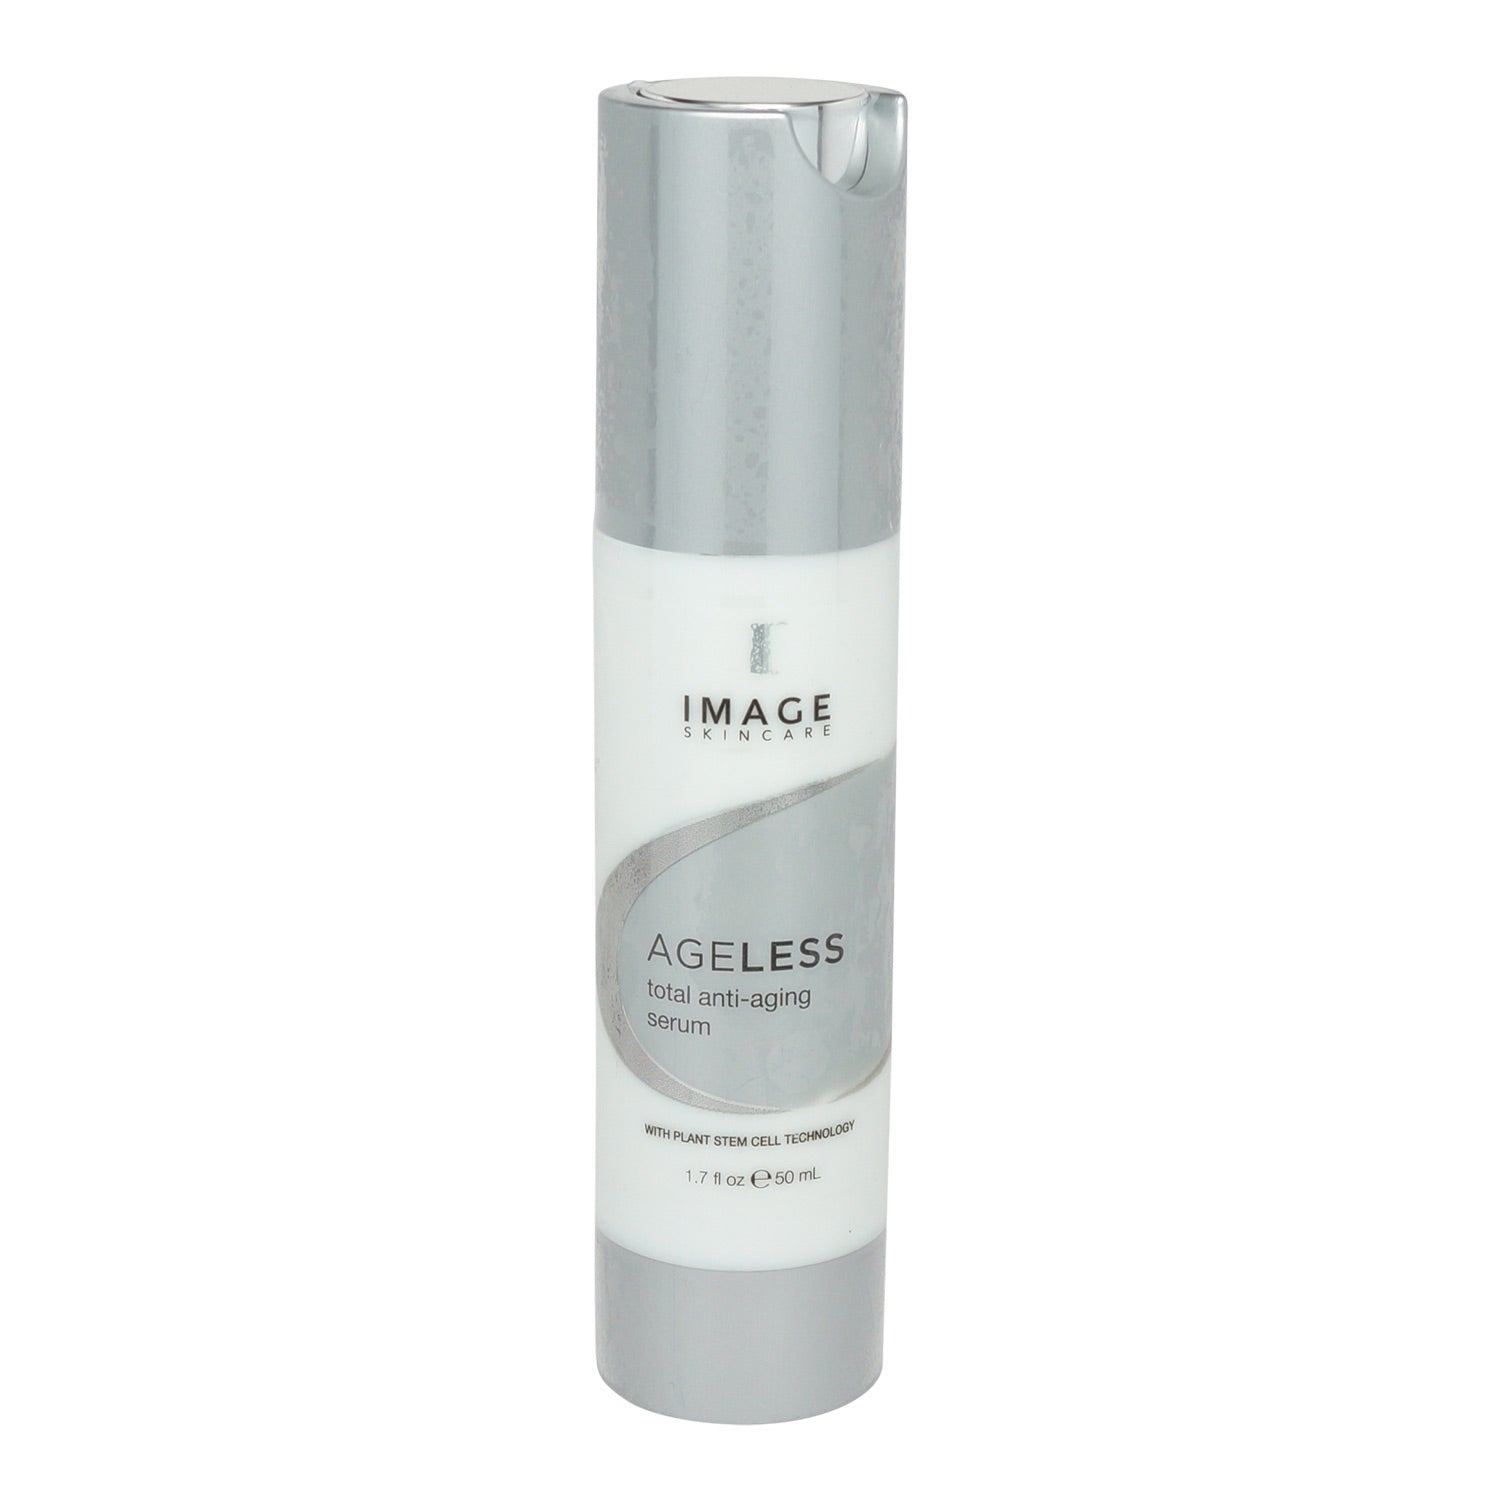 IMAGE ~ AGELESS ~ FORMULATED FOR AGING SKIN TOTAL ANTI-AGING SERUM ~ 1.7OZ